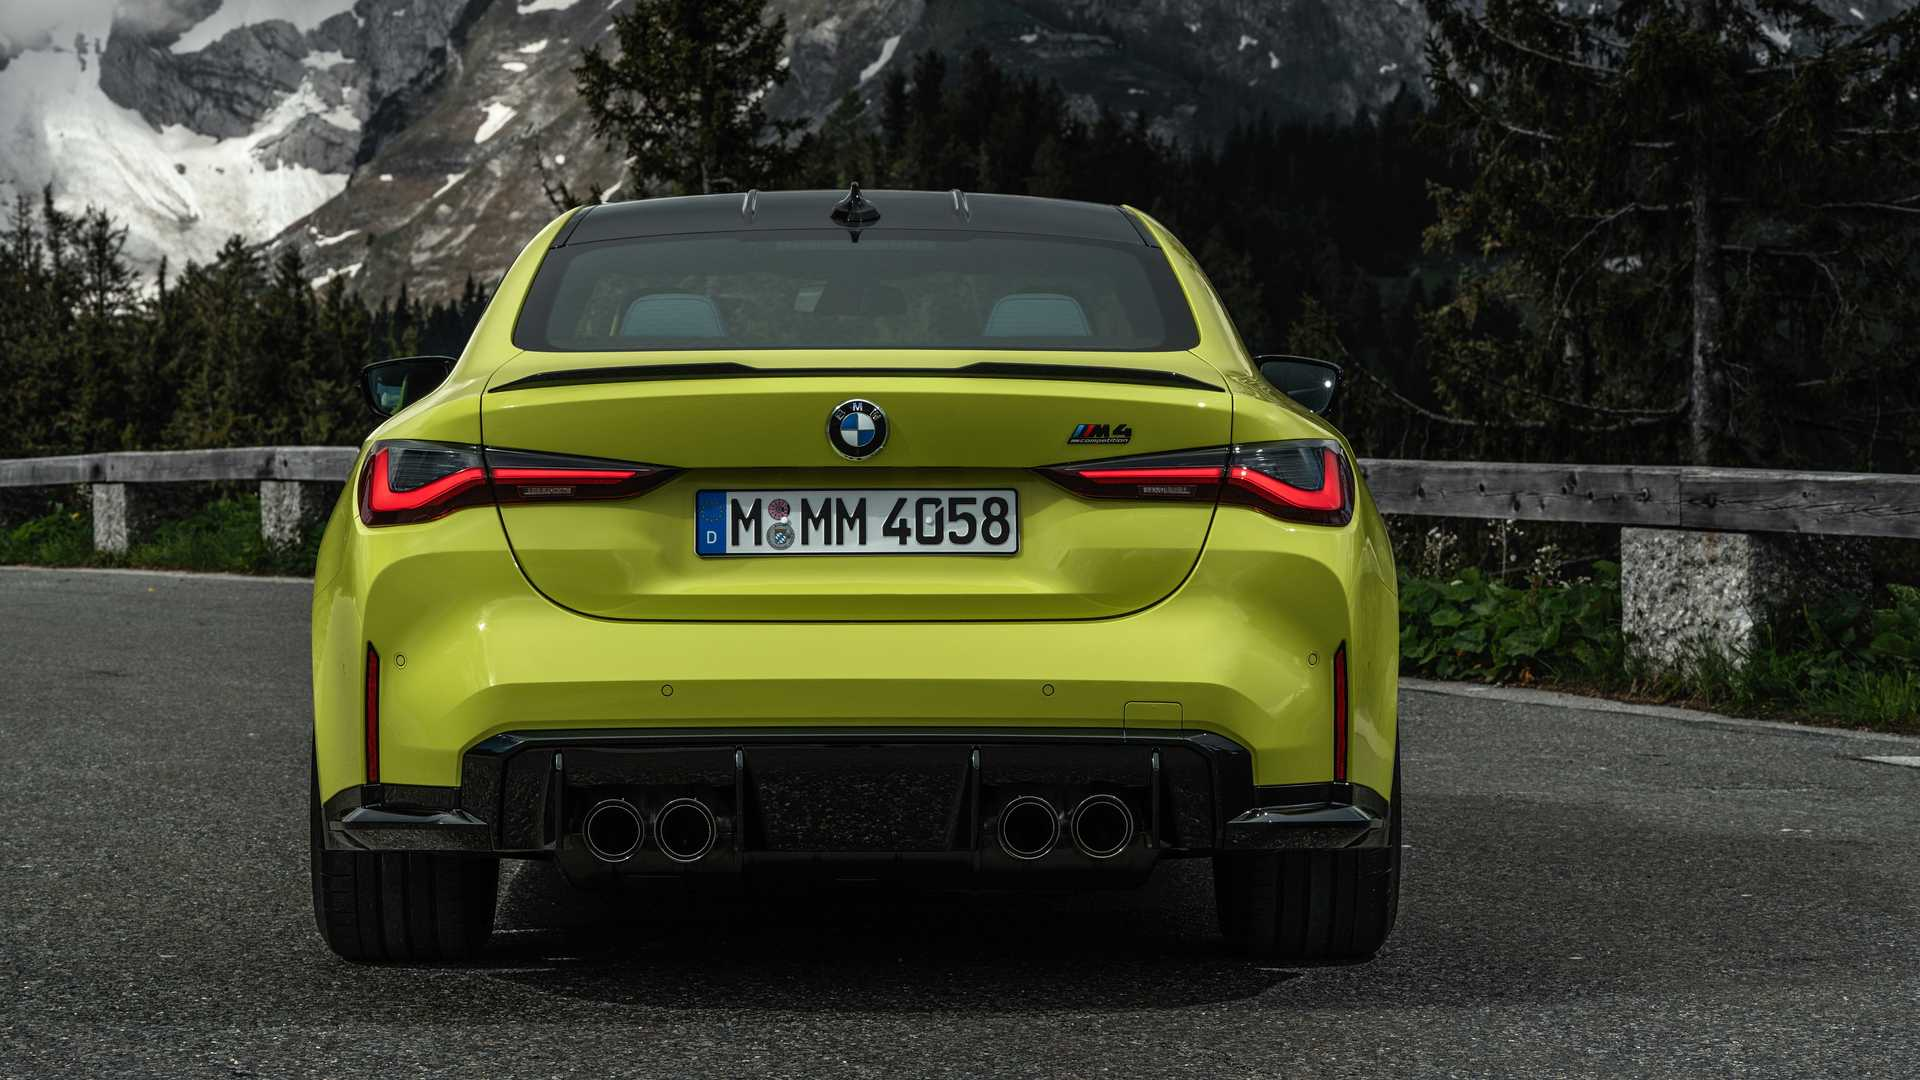 2021 BMW M4 Rear Lights